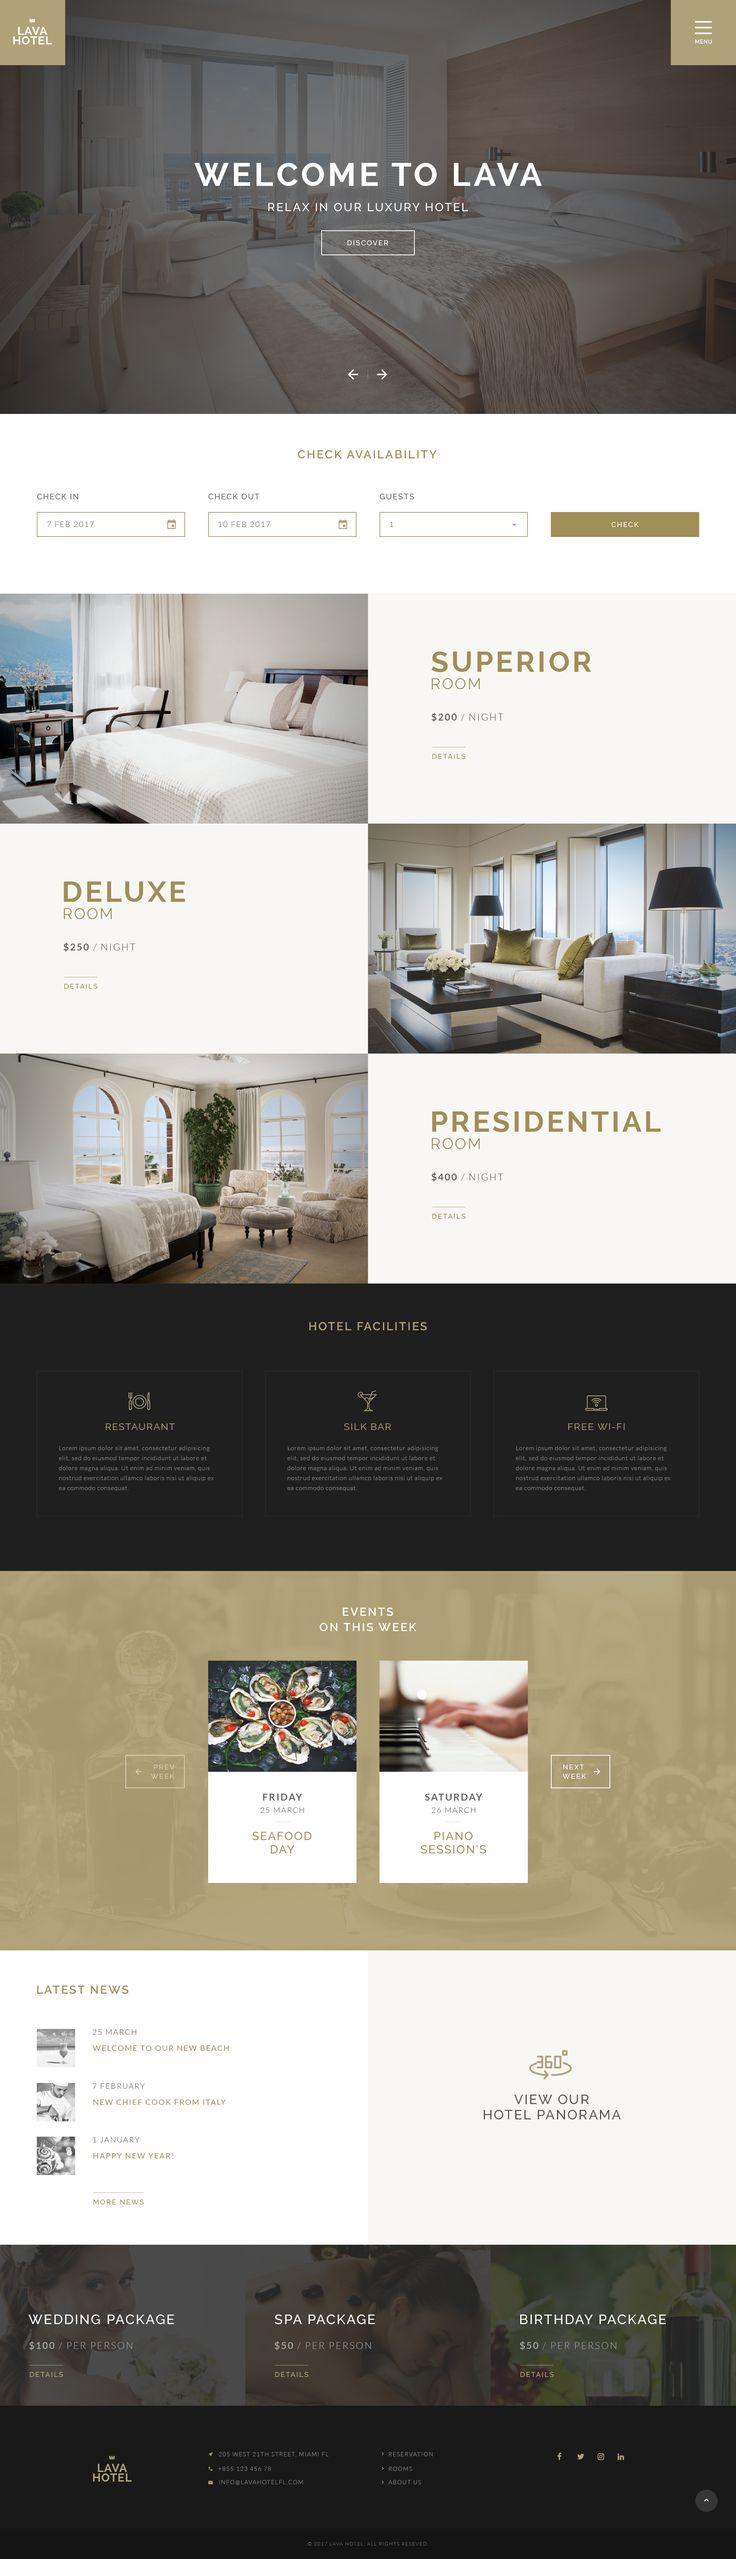 LAVA - Luxury Hotel PSD Template #hostel #hotel #luxury • Download ➝ https://themeforest.net/item/lava-luxury-hotel-psd-template/19215707?ref=pxcr